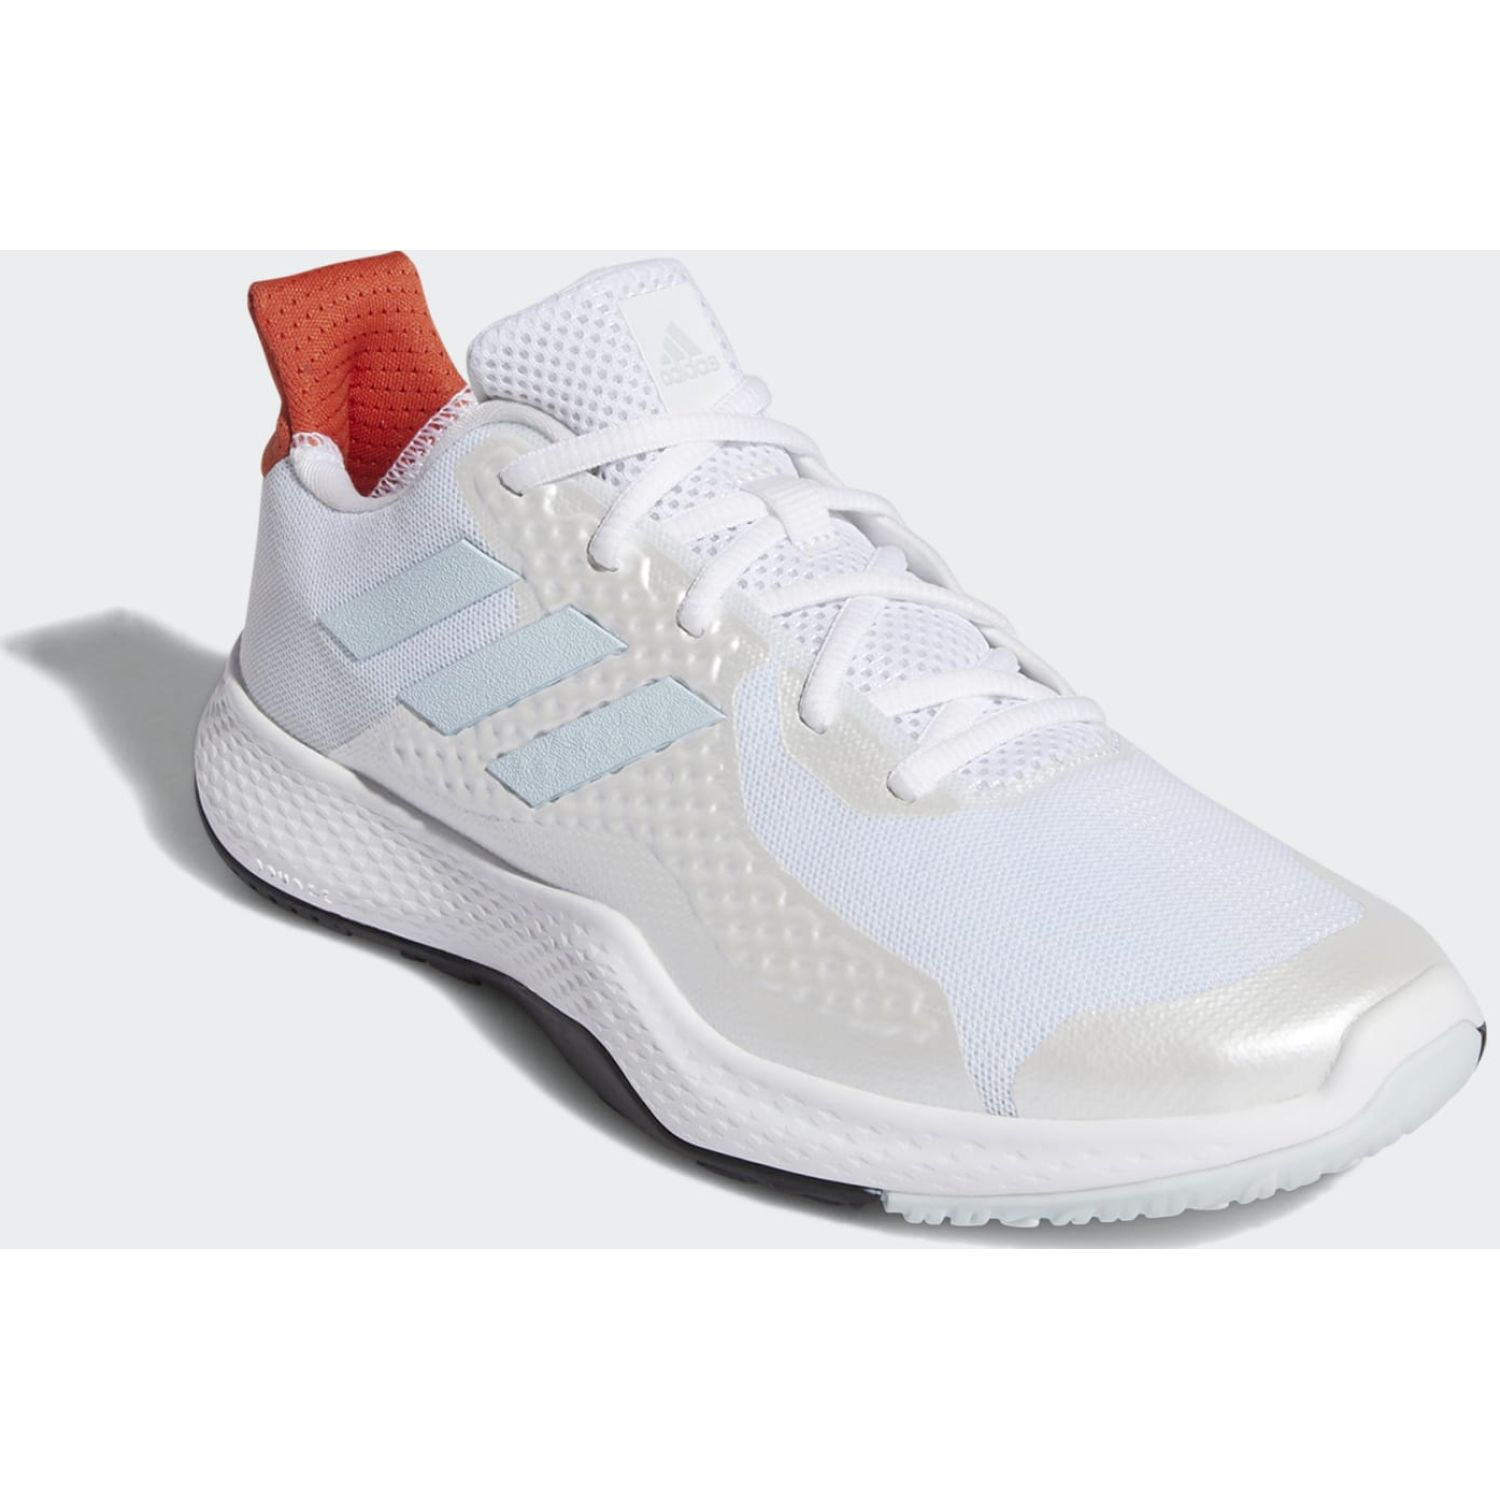 Adidas Fitbounce Trainer W Blanco Mujeres